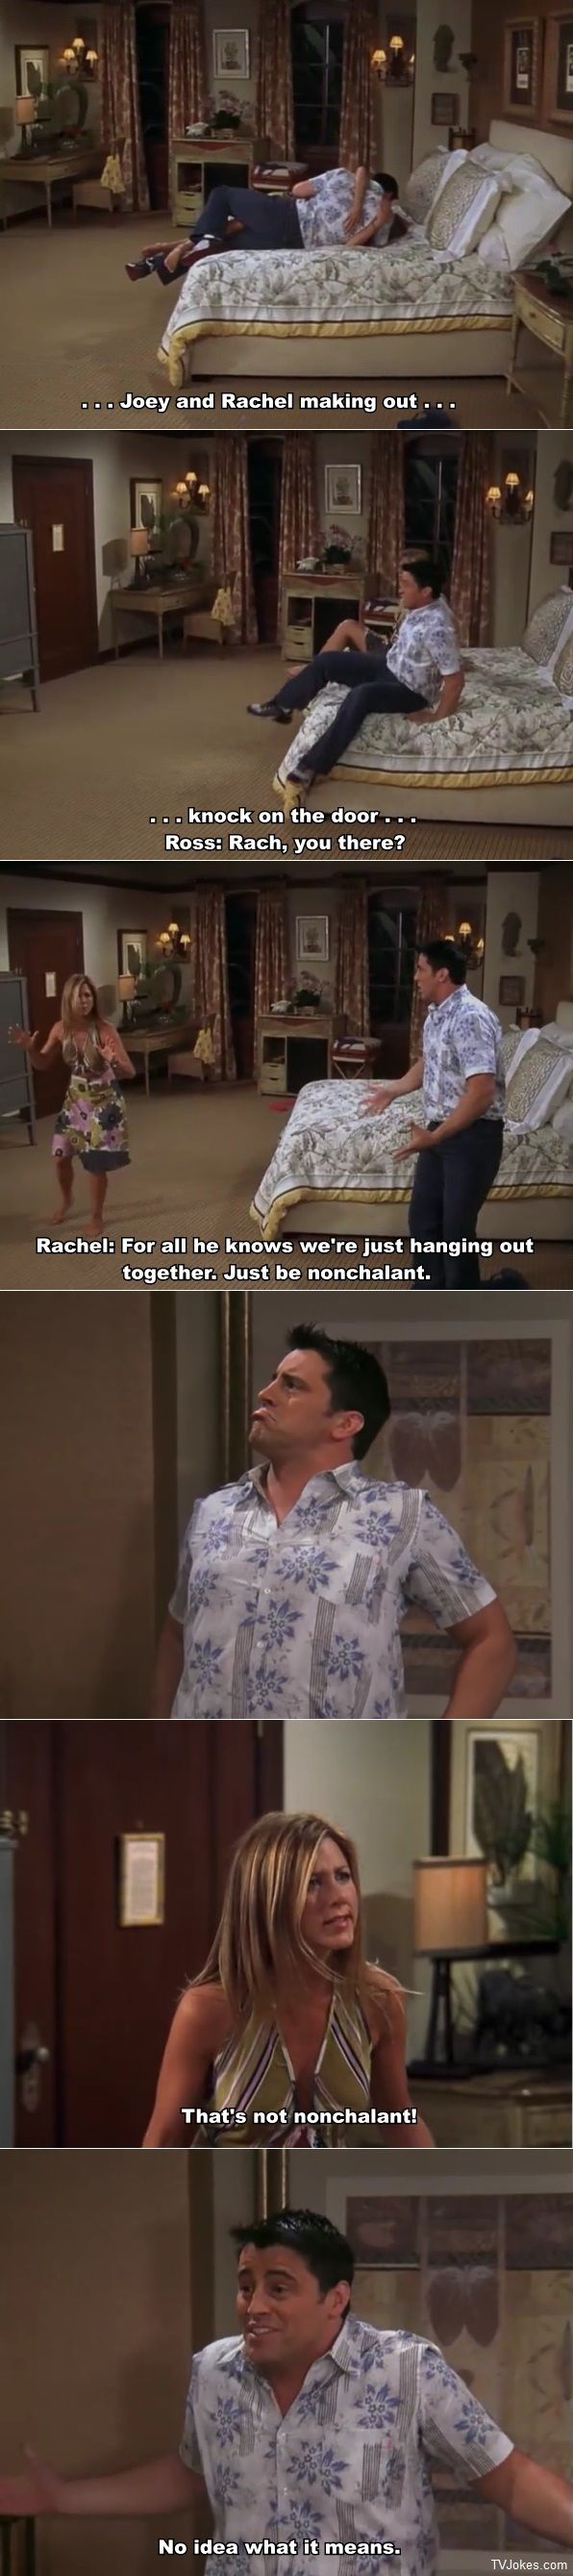 Joey and Rachel making out in Barbados.